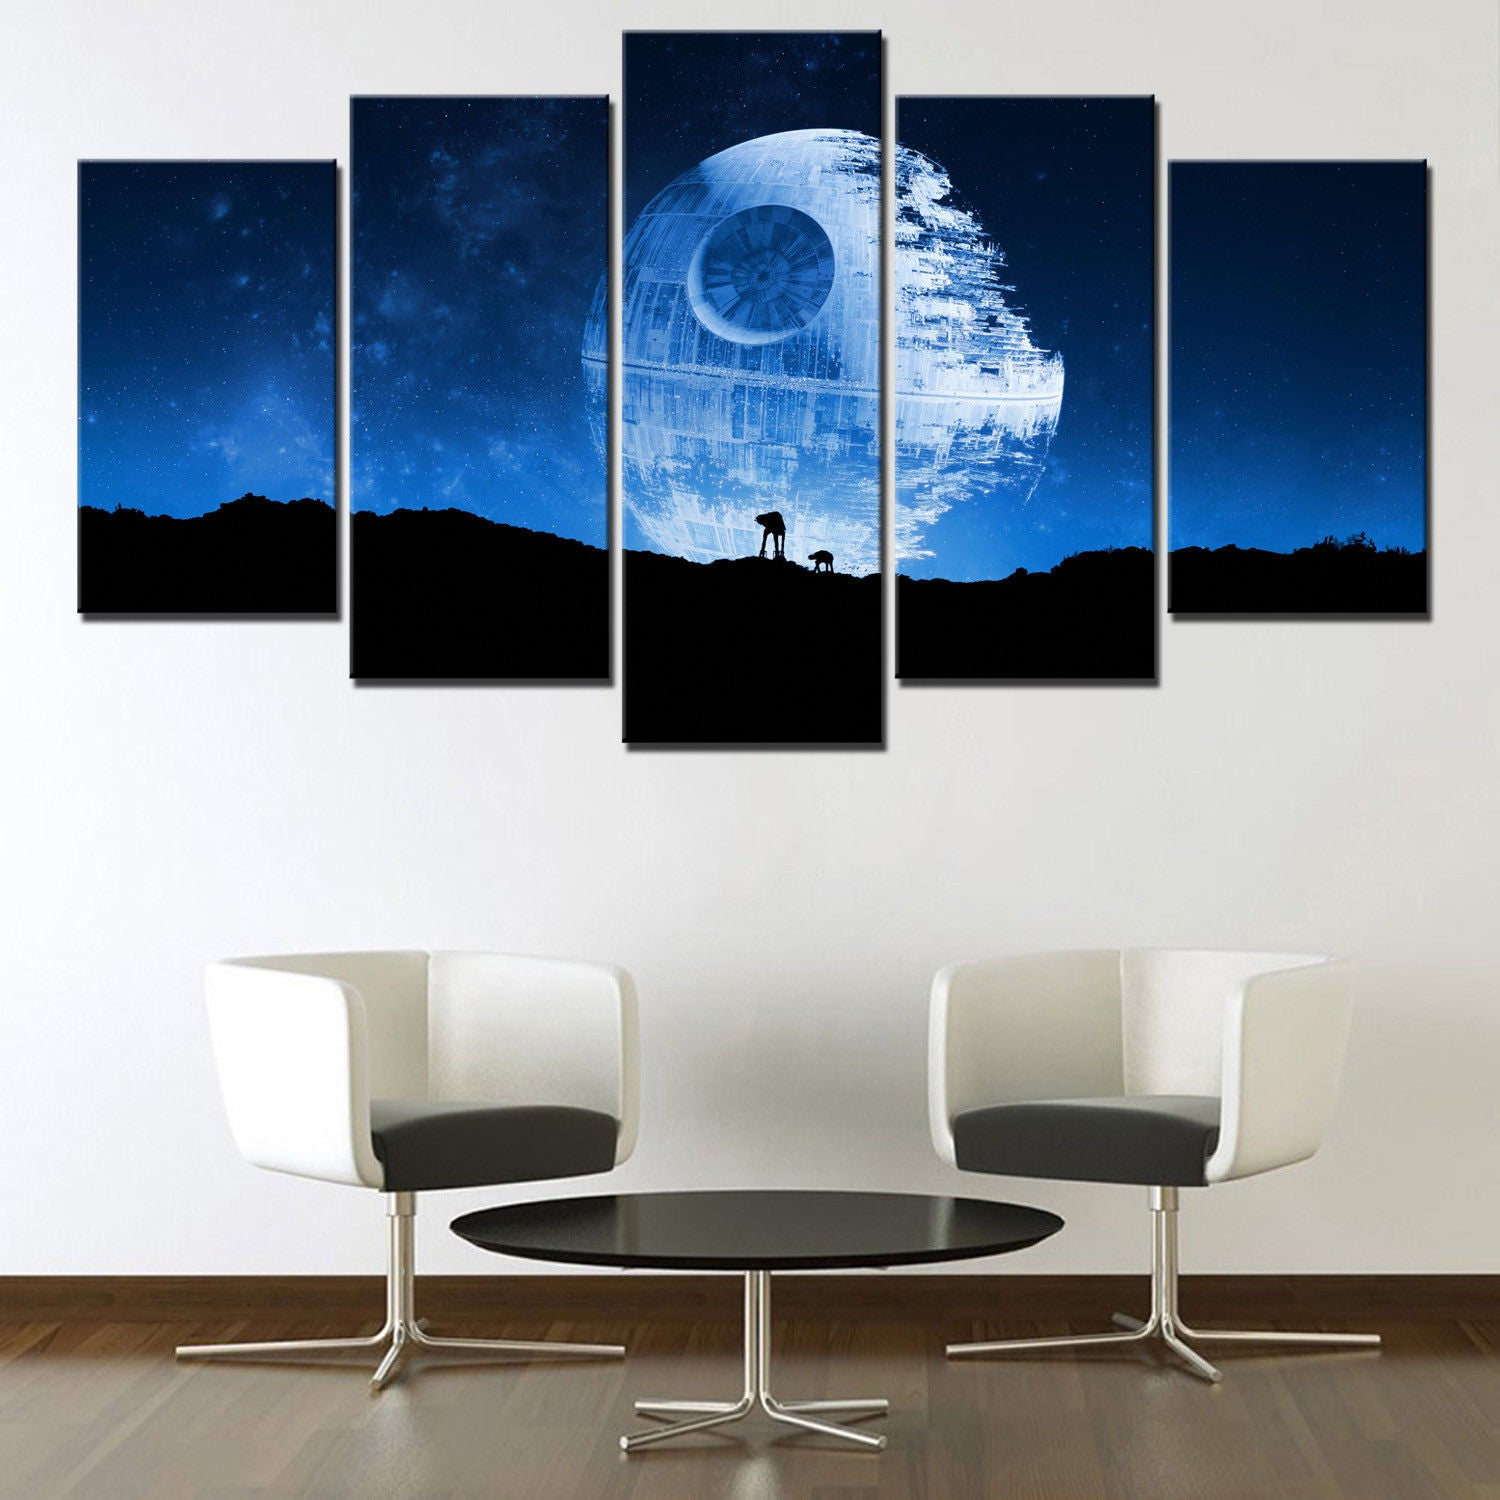 The Force Gallery